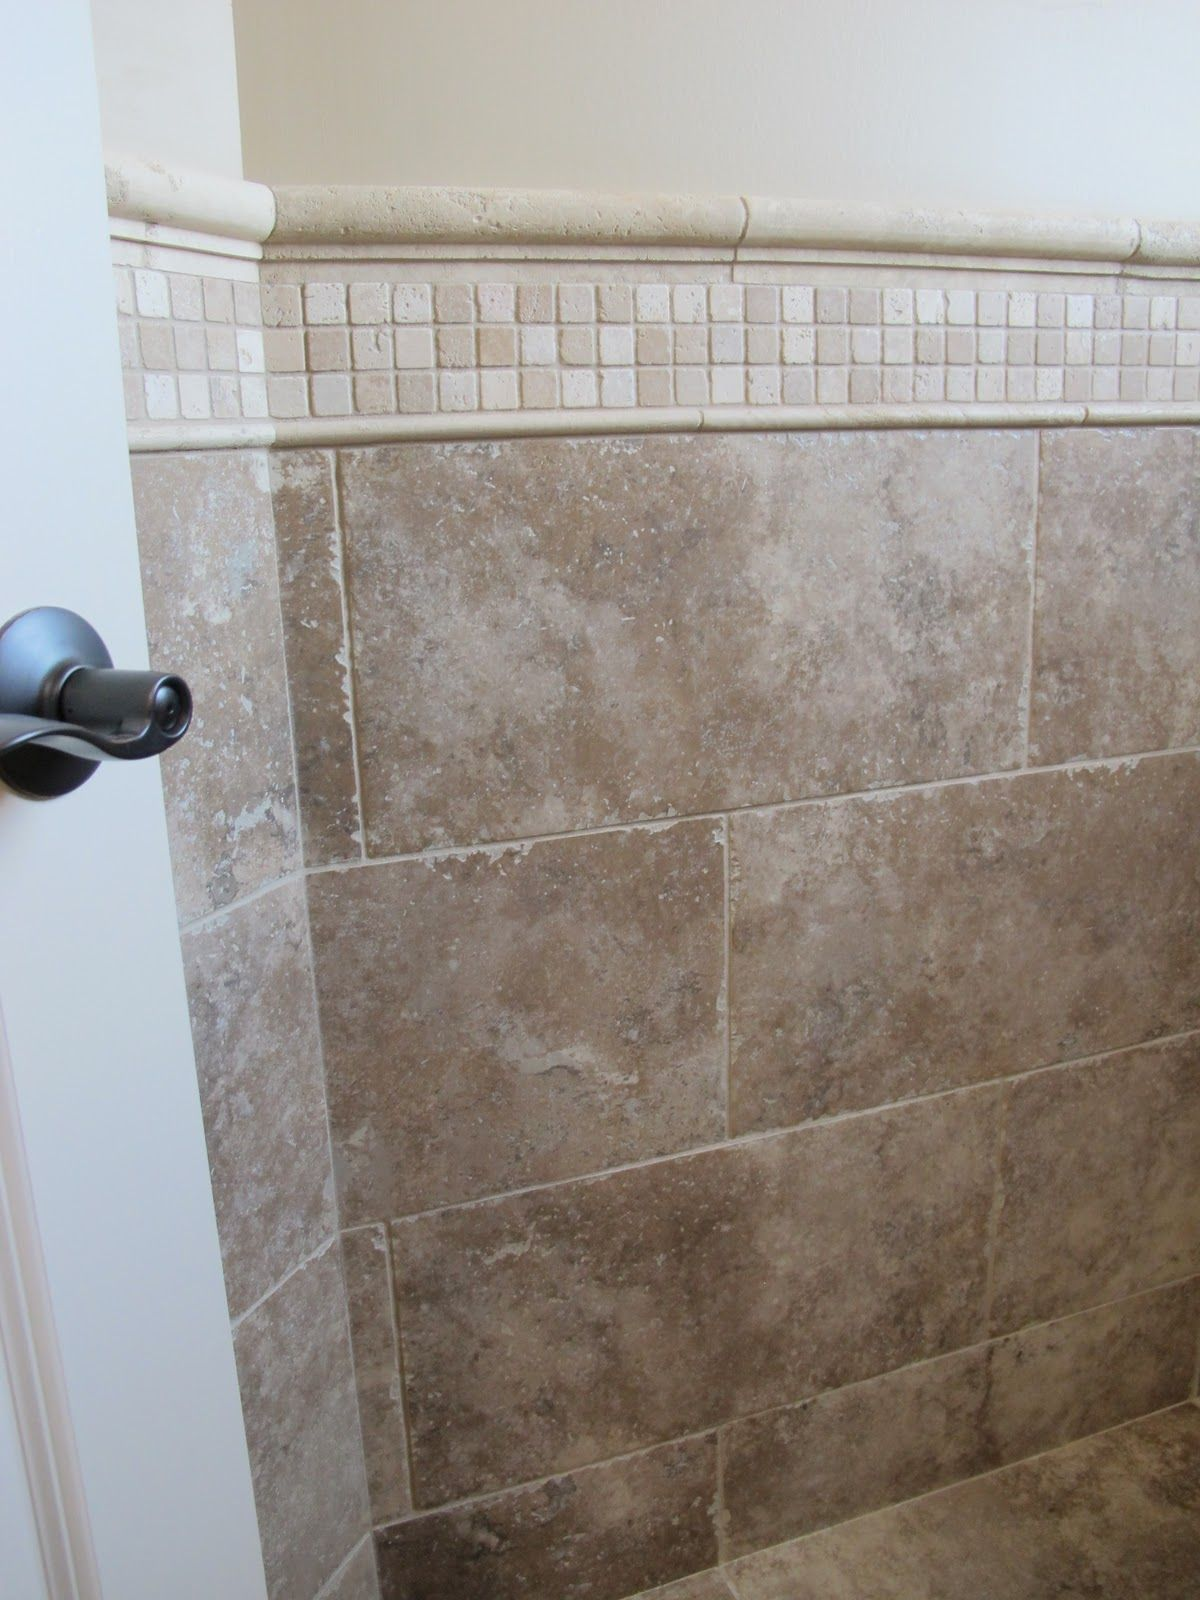 lowes chair rail tile roller walker transport around bathtub surround close up of the